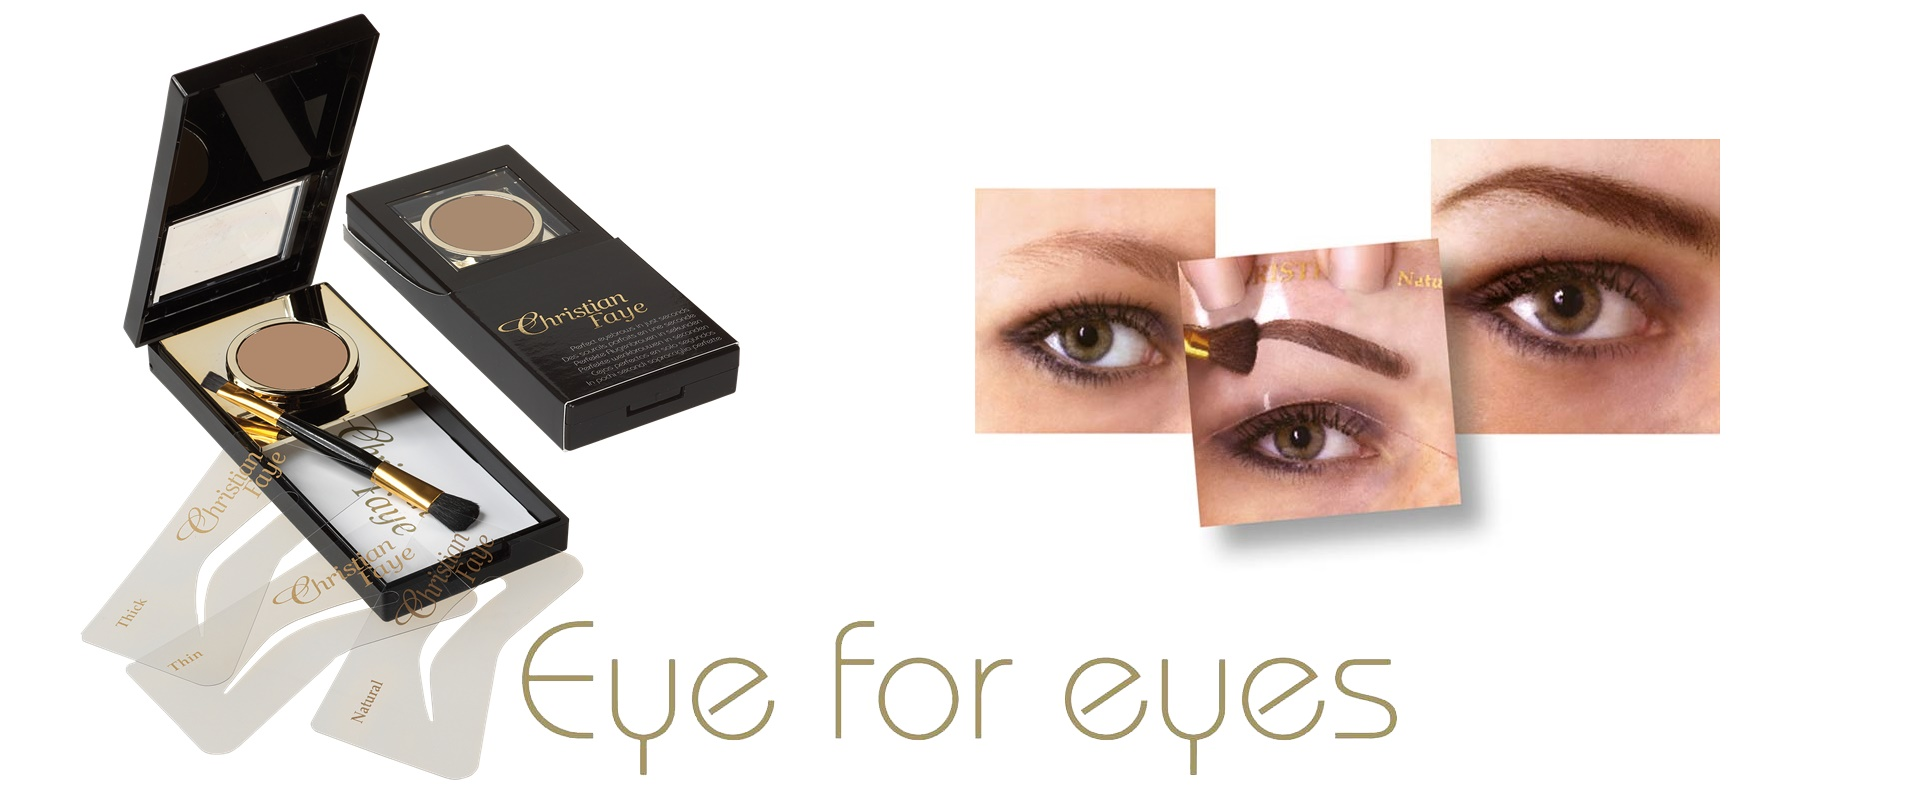 Christian Faye Eyebrow Makeup Lashes And Eyebrow Accessories